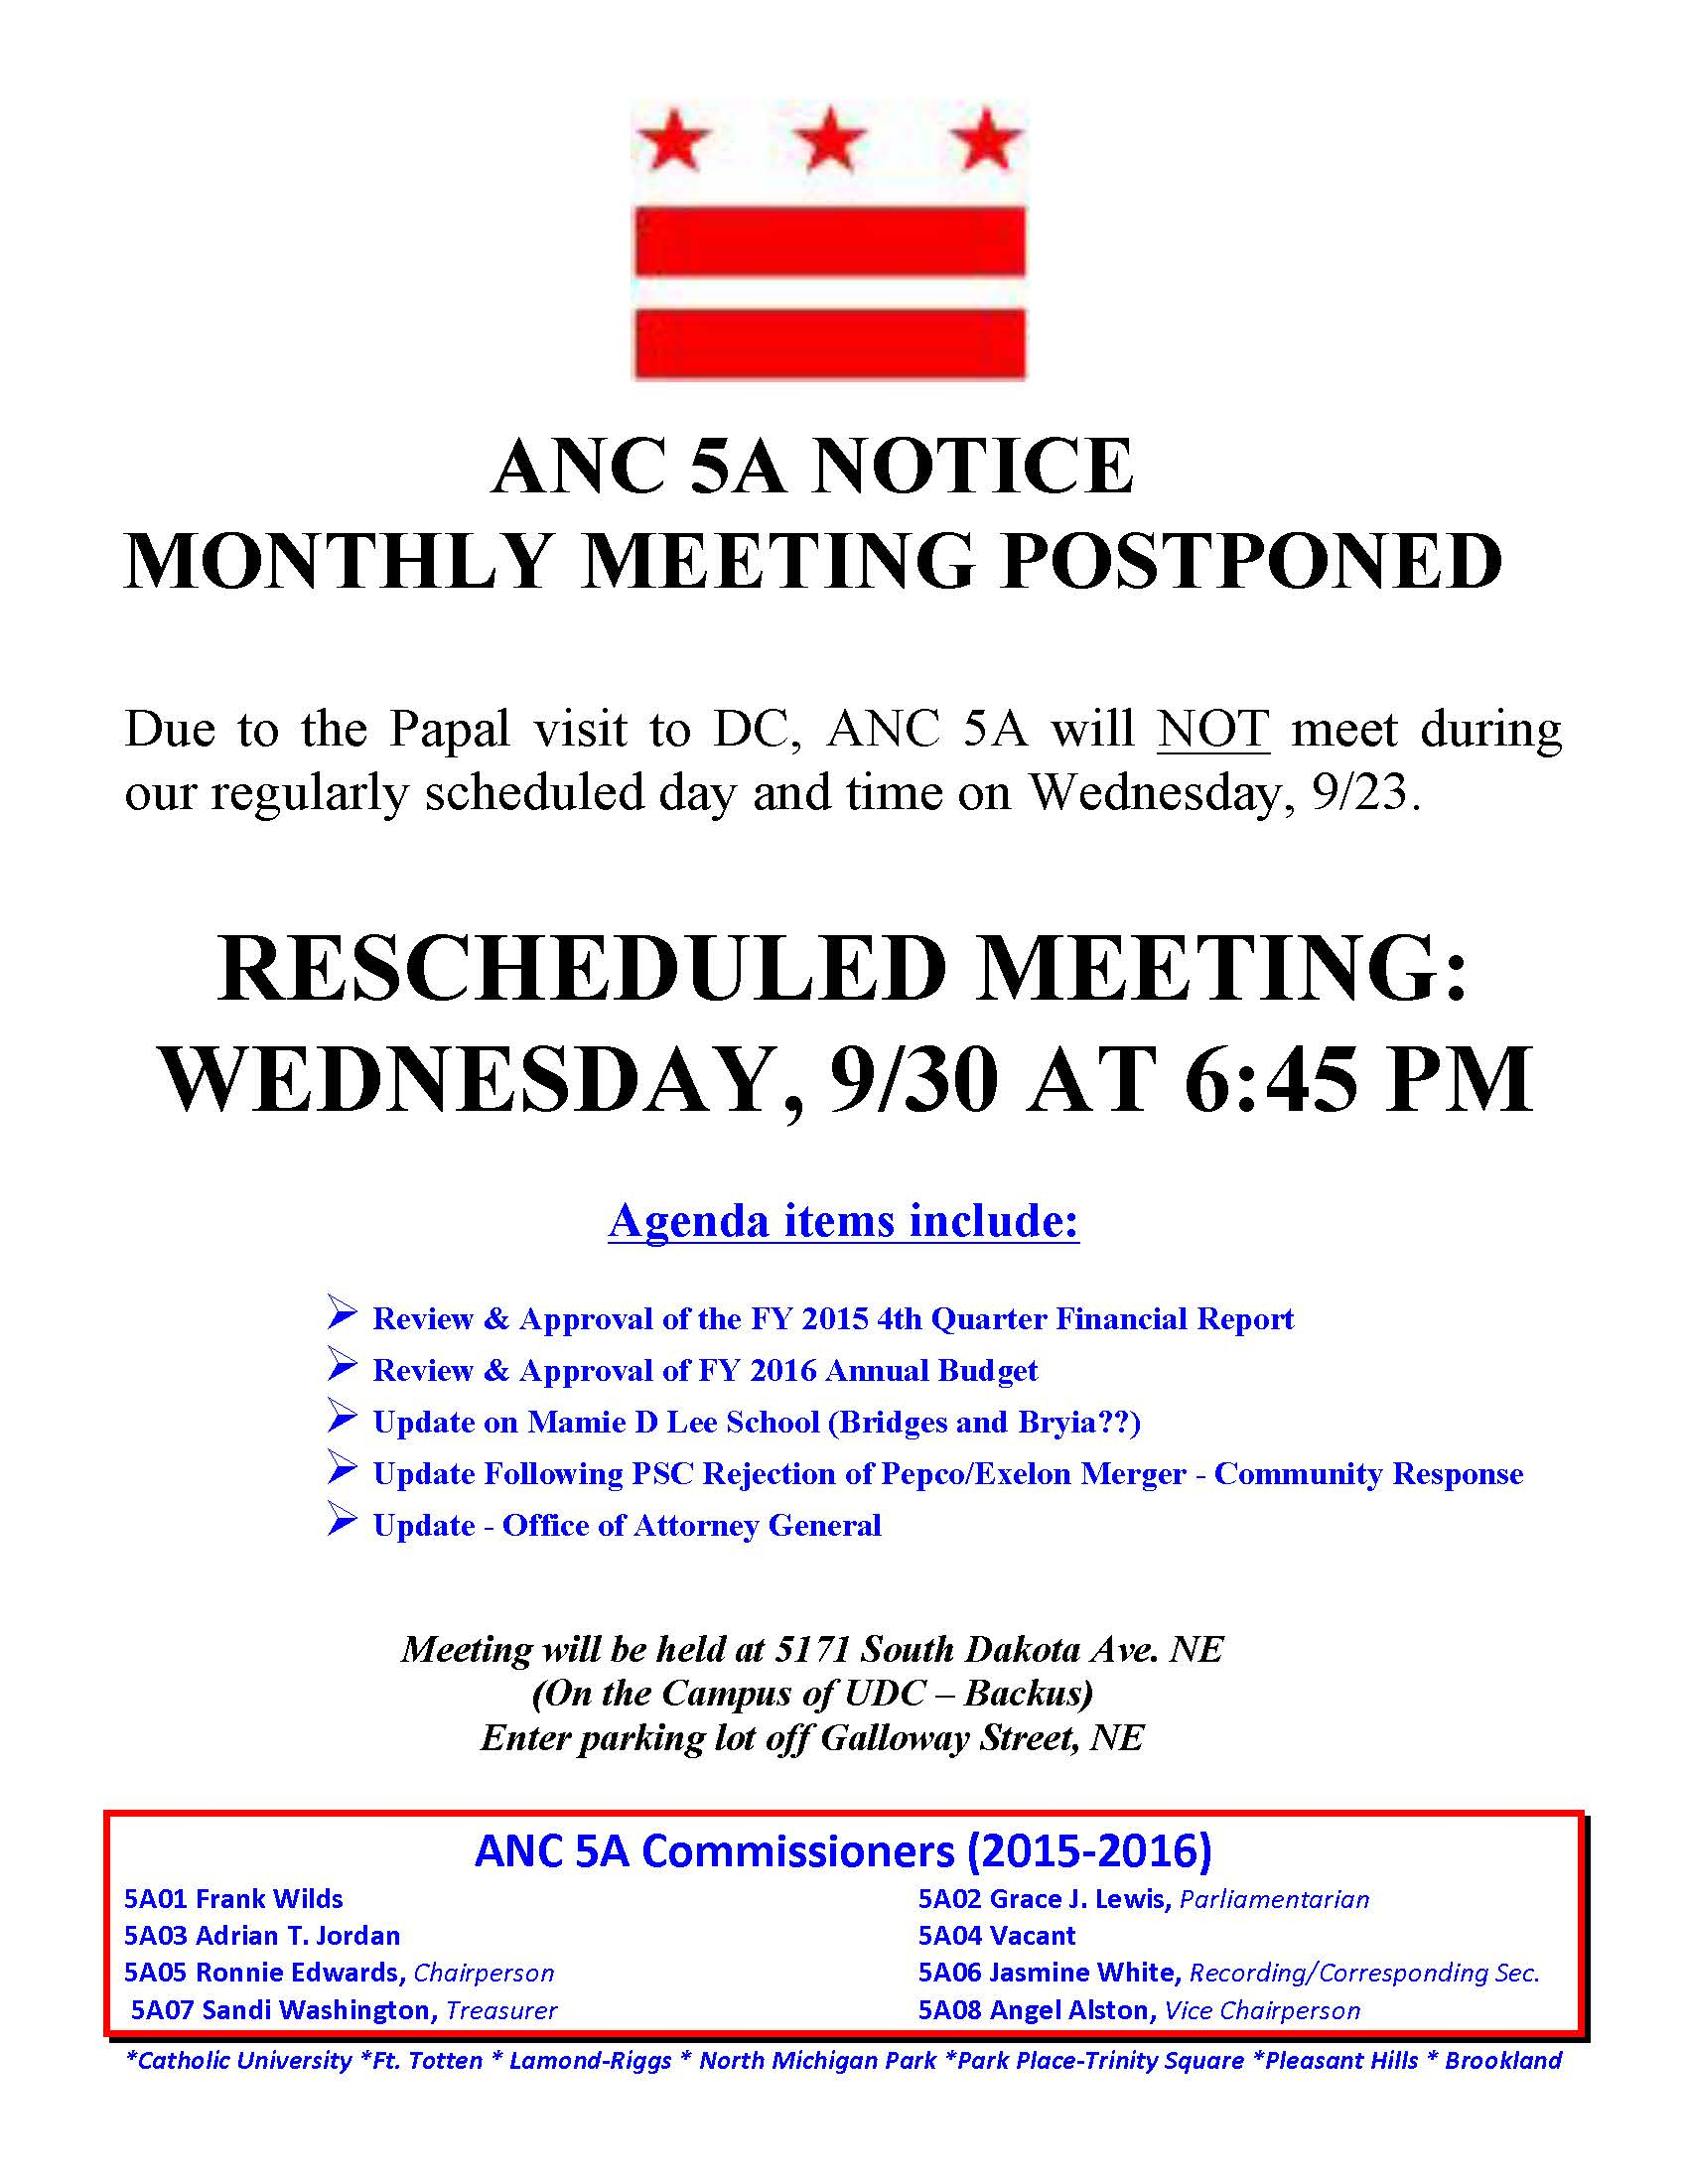 Rescheduled meeting letter sample